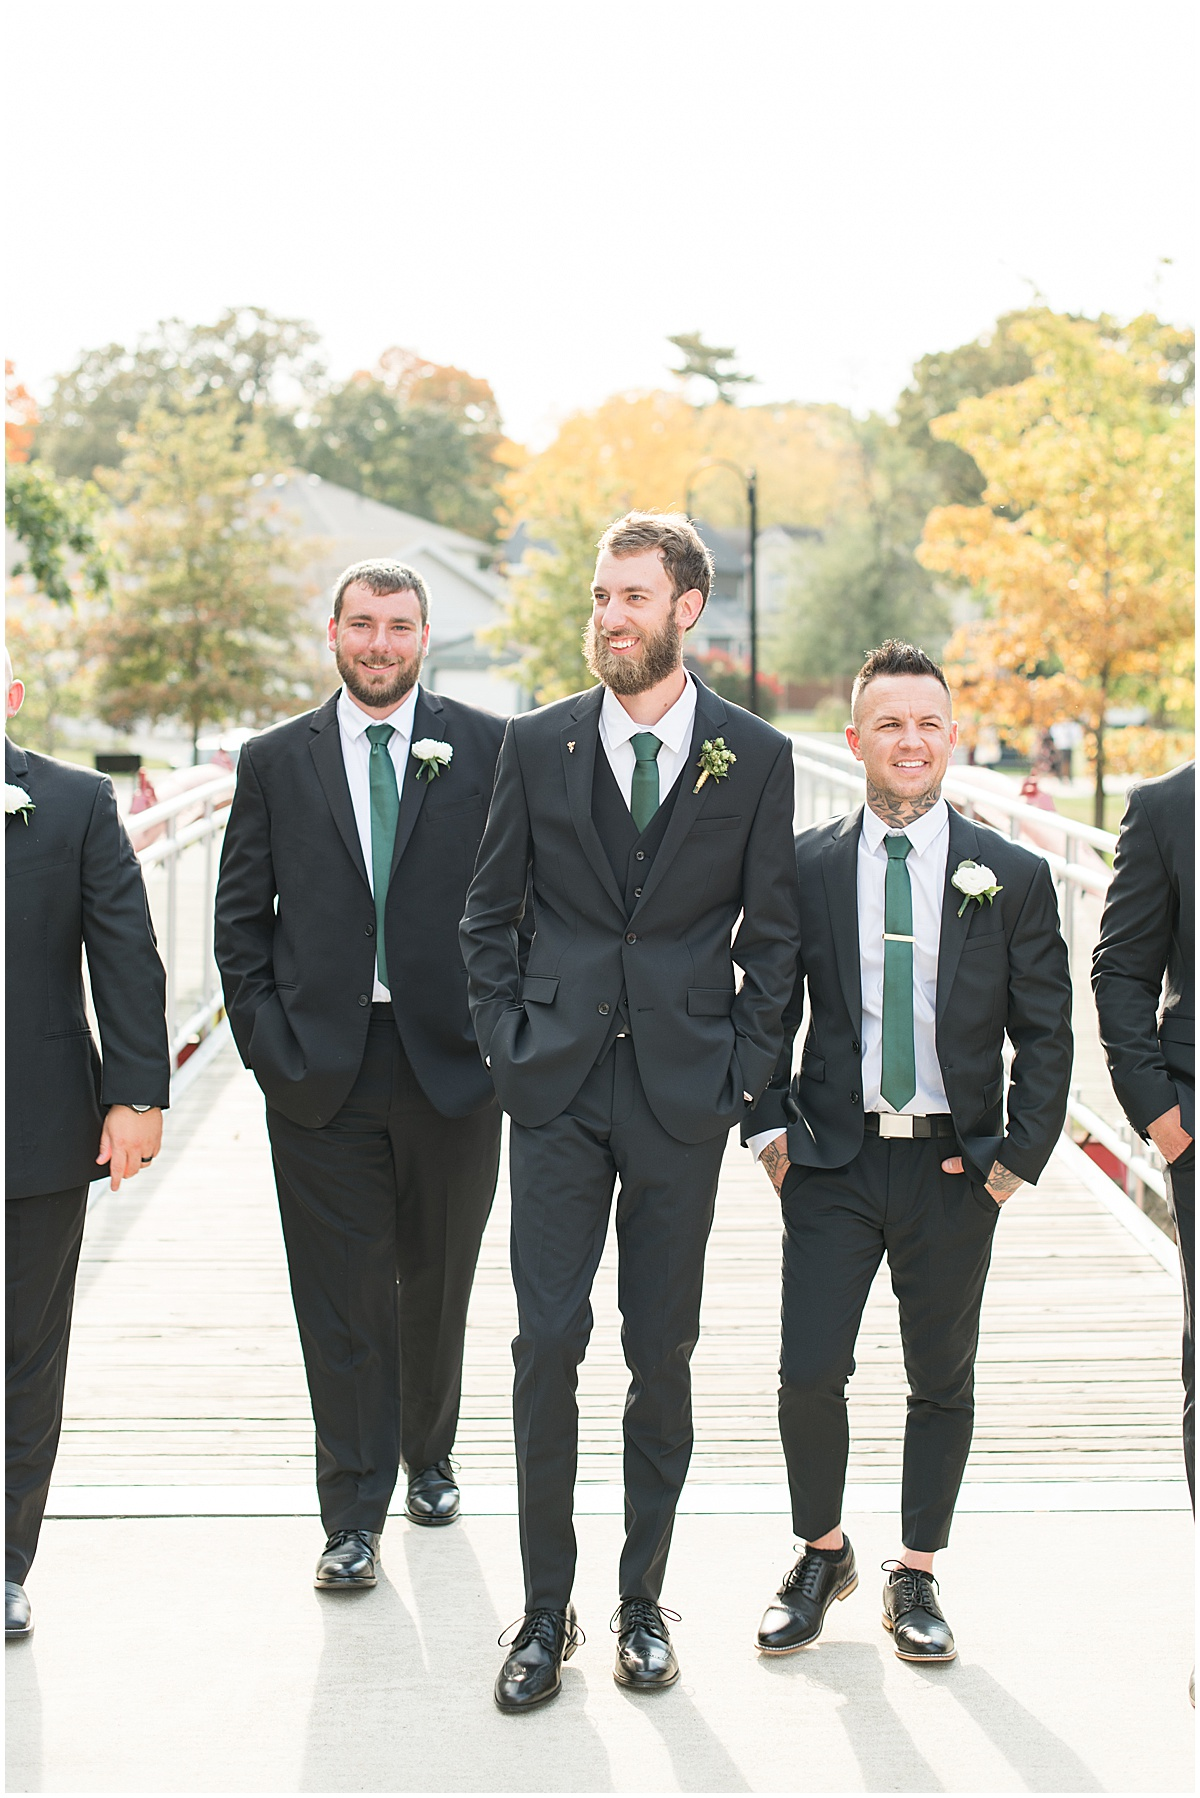 Groomsmen ready for eMbers Venue wedding in Rensselaer, Indiana